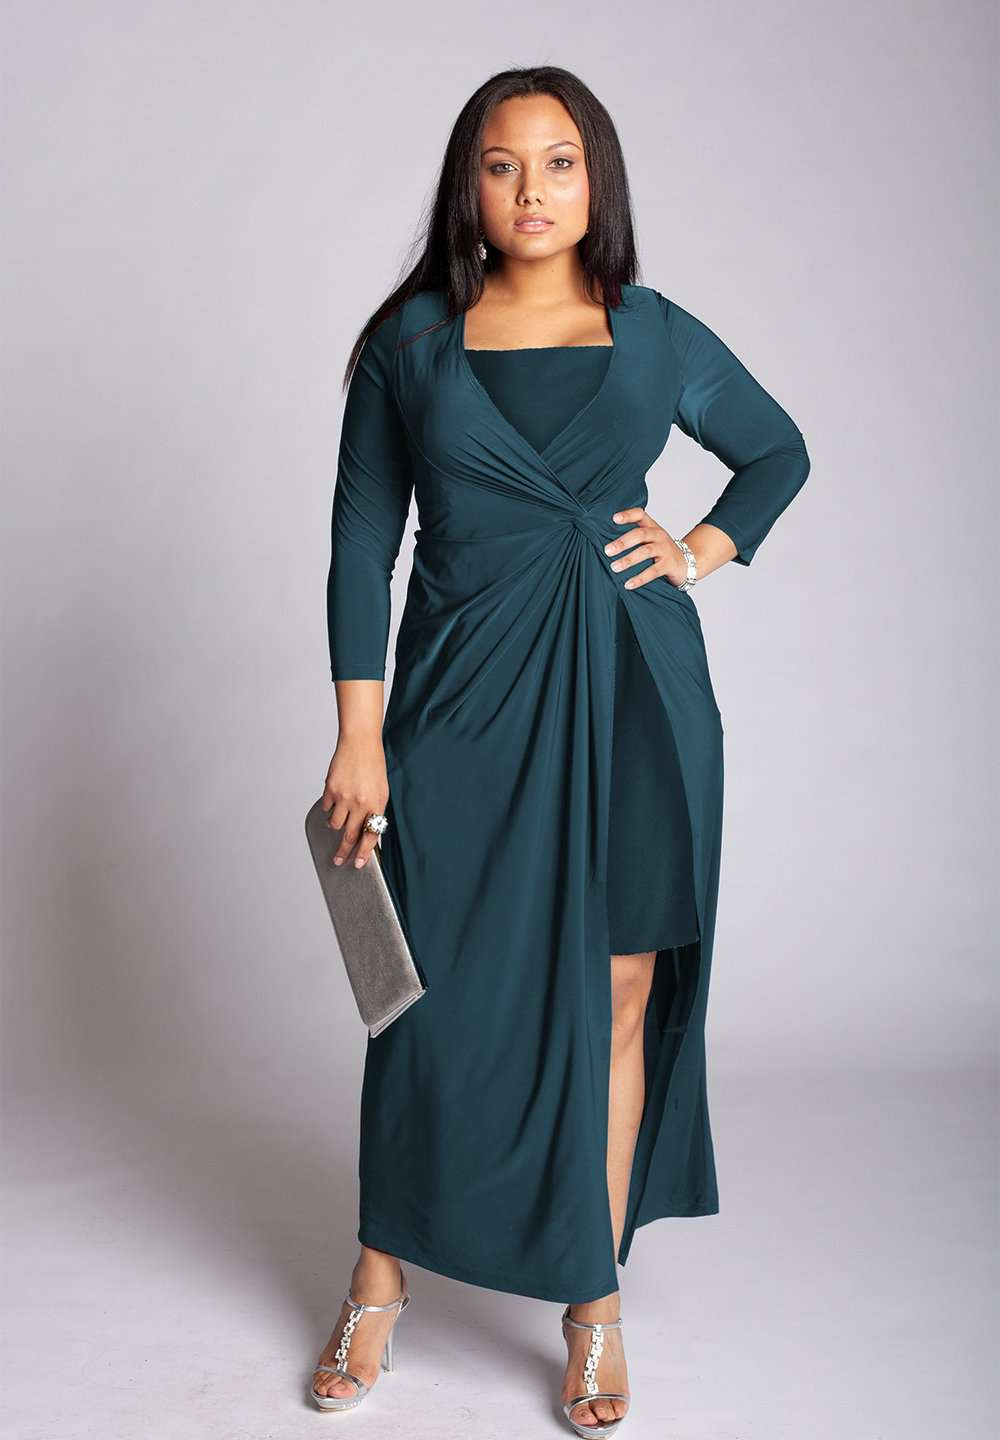 Micha Plus Size Gown in Teal (Made-To-Order)